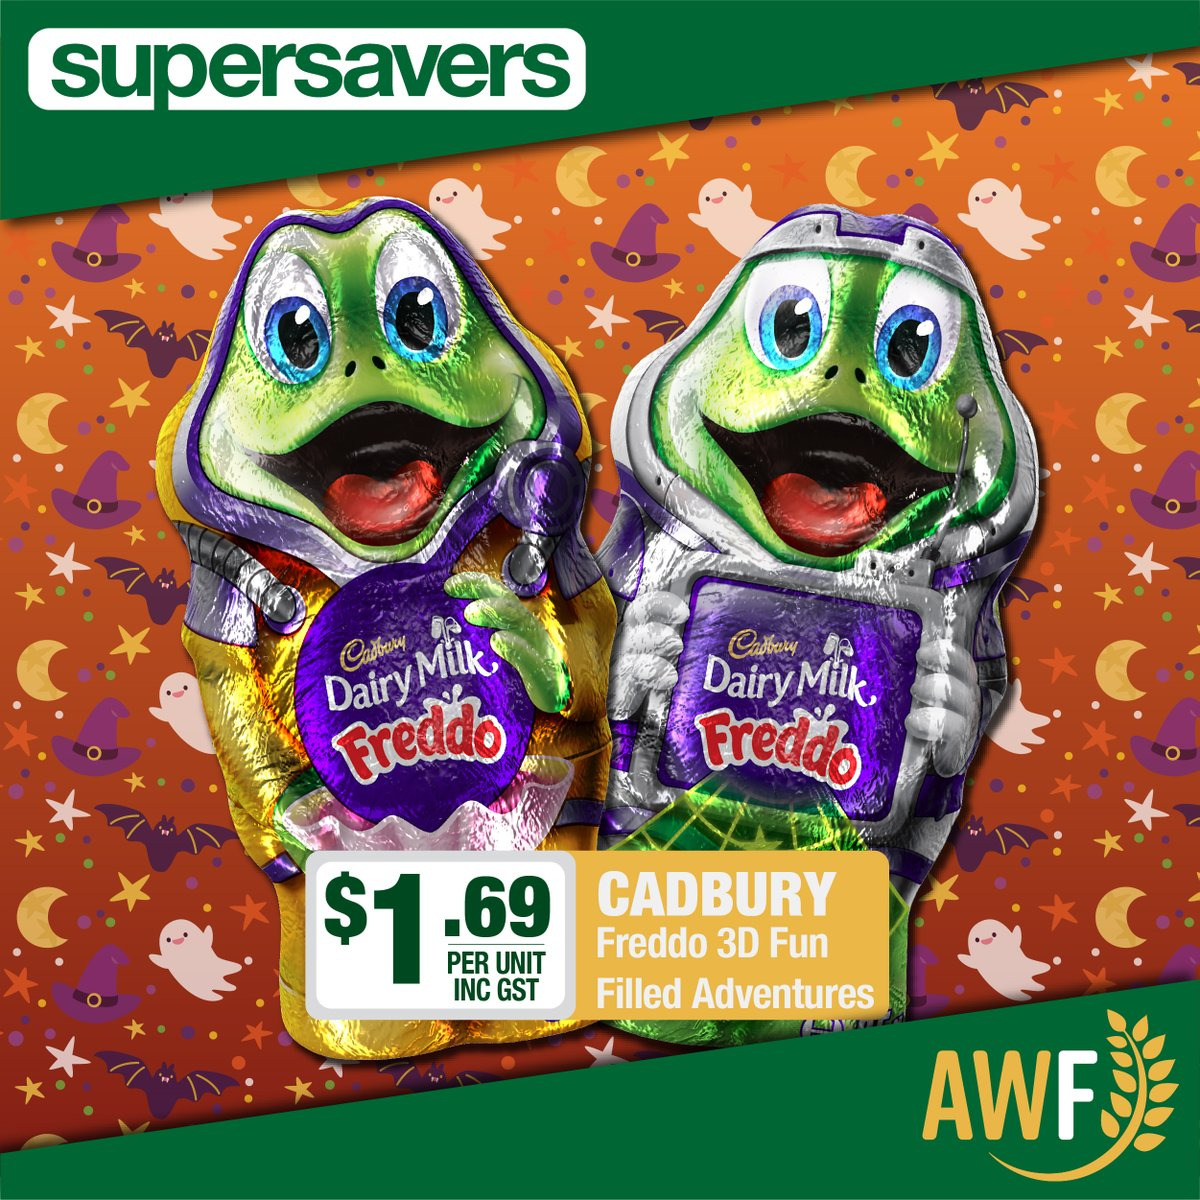 Have you tried #Cadburys NEW 3D Freddo Fun Filled Adventures? They're so tasty! Grab yours from Price Busters!  View it online: https://t.co/4JQiBKD4hX ------------- 📞 Call us: (08) 9041 1424 📧 Email: sales@allwaysfoods.com.au #supersavers #AWF #AllwaysFoods #merredin #freddo https://t.co/zctSyOdGo8